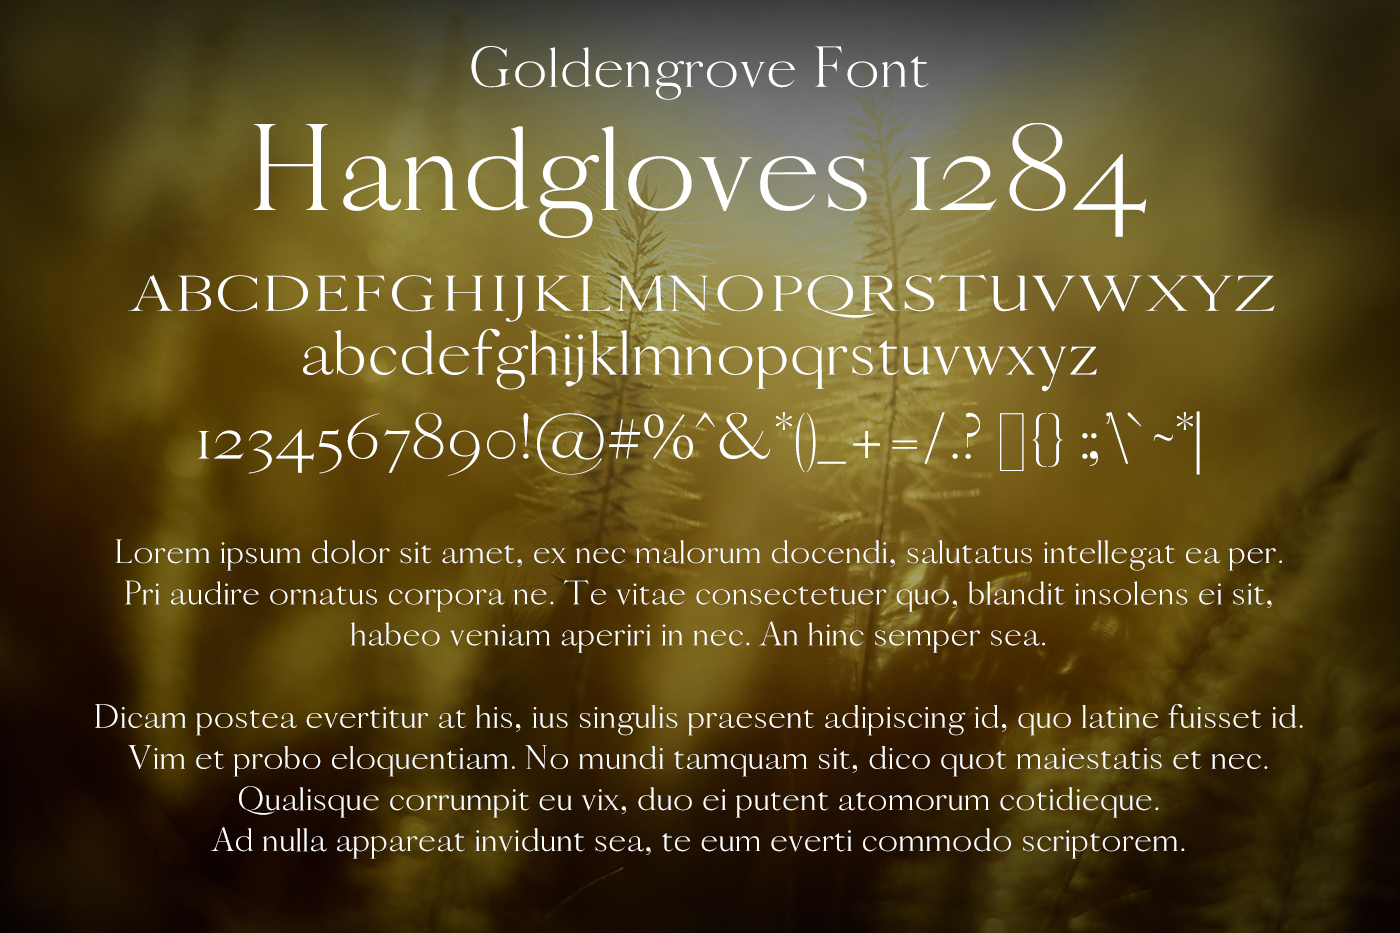 Goldengrove Font example image 2